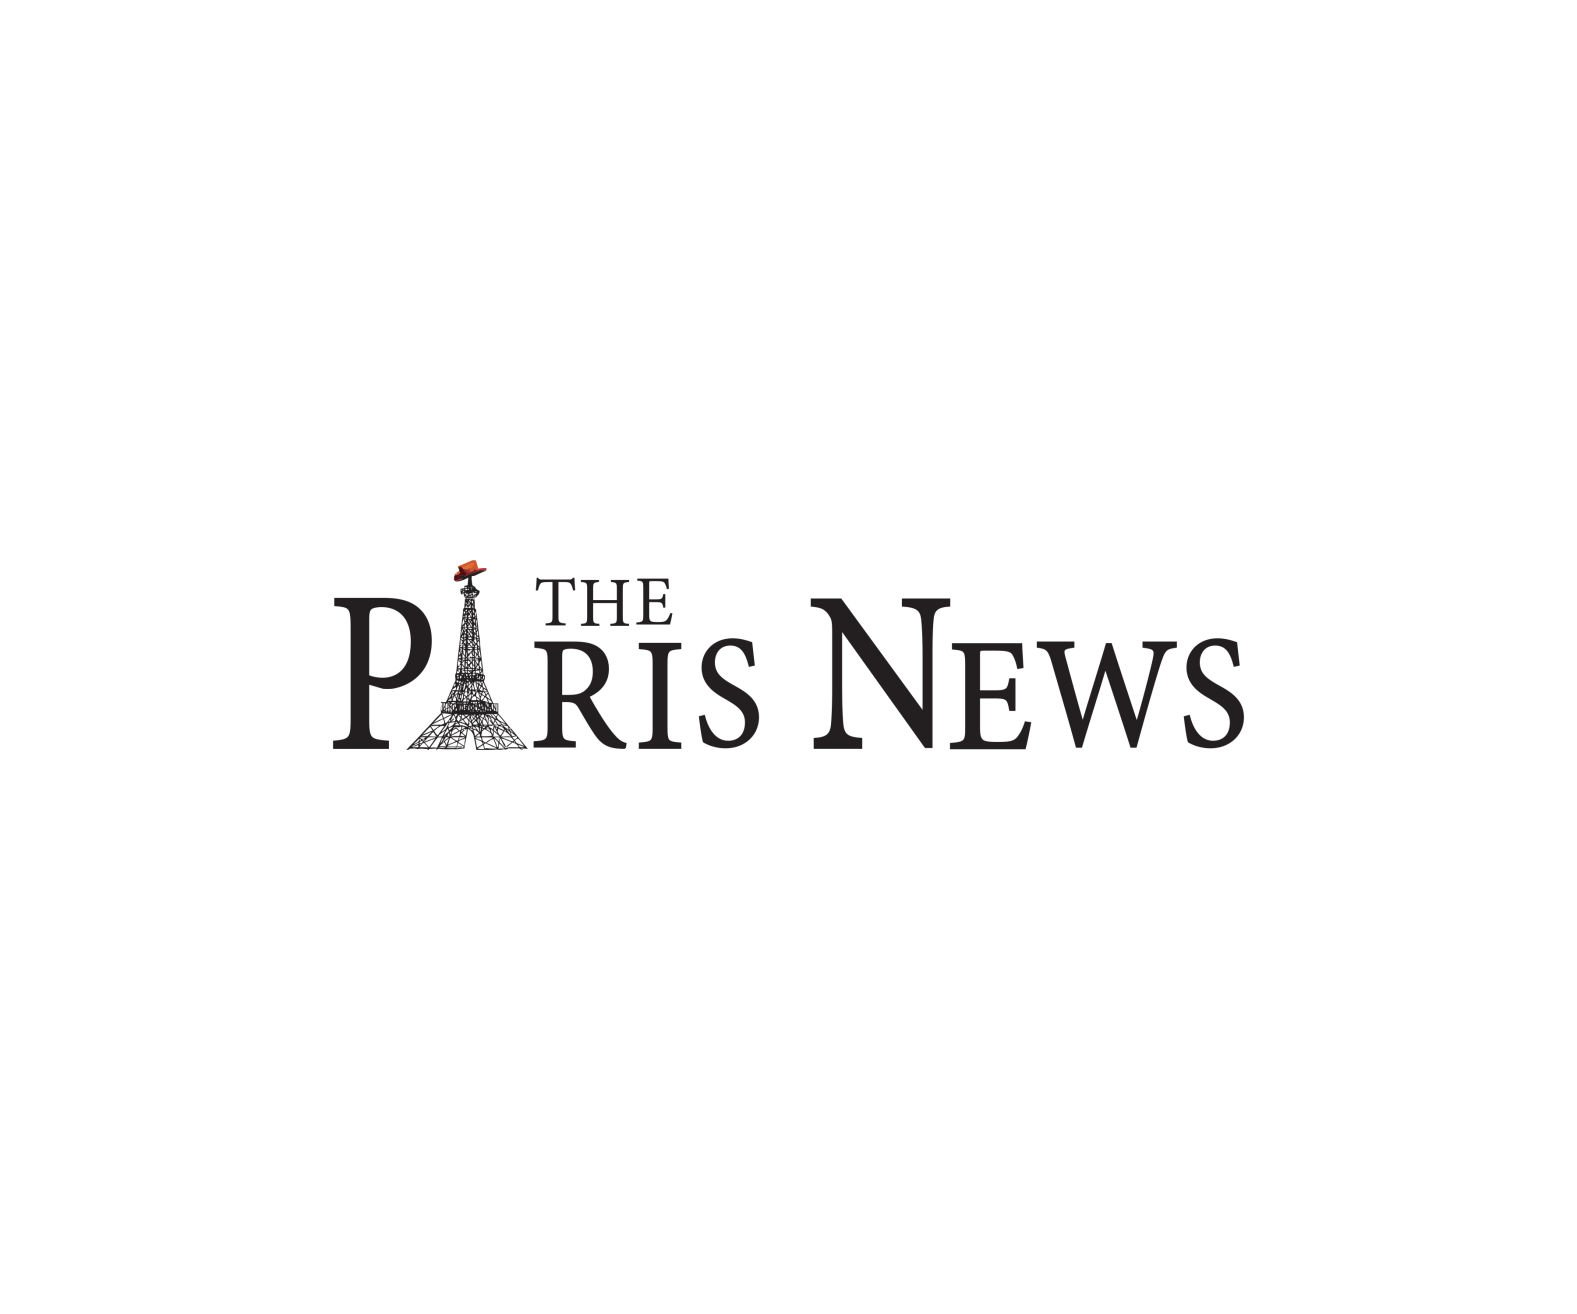 The Paris News logo